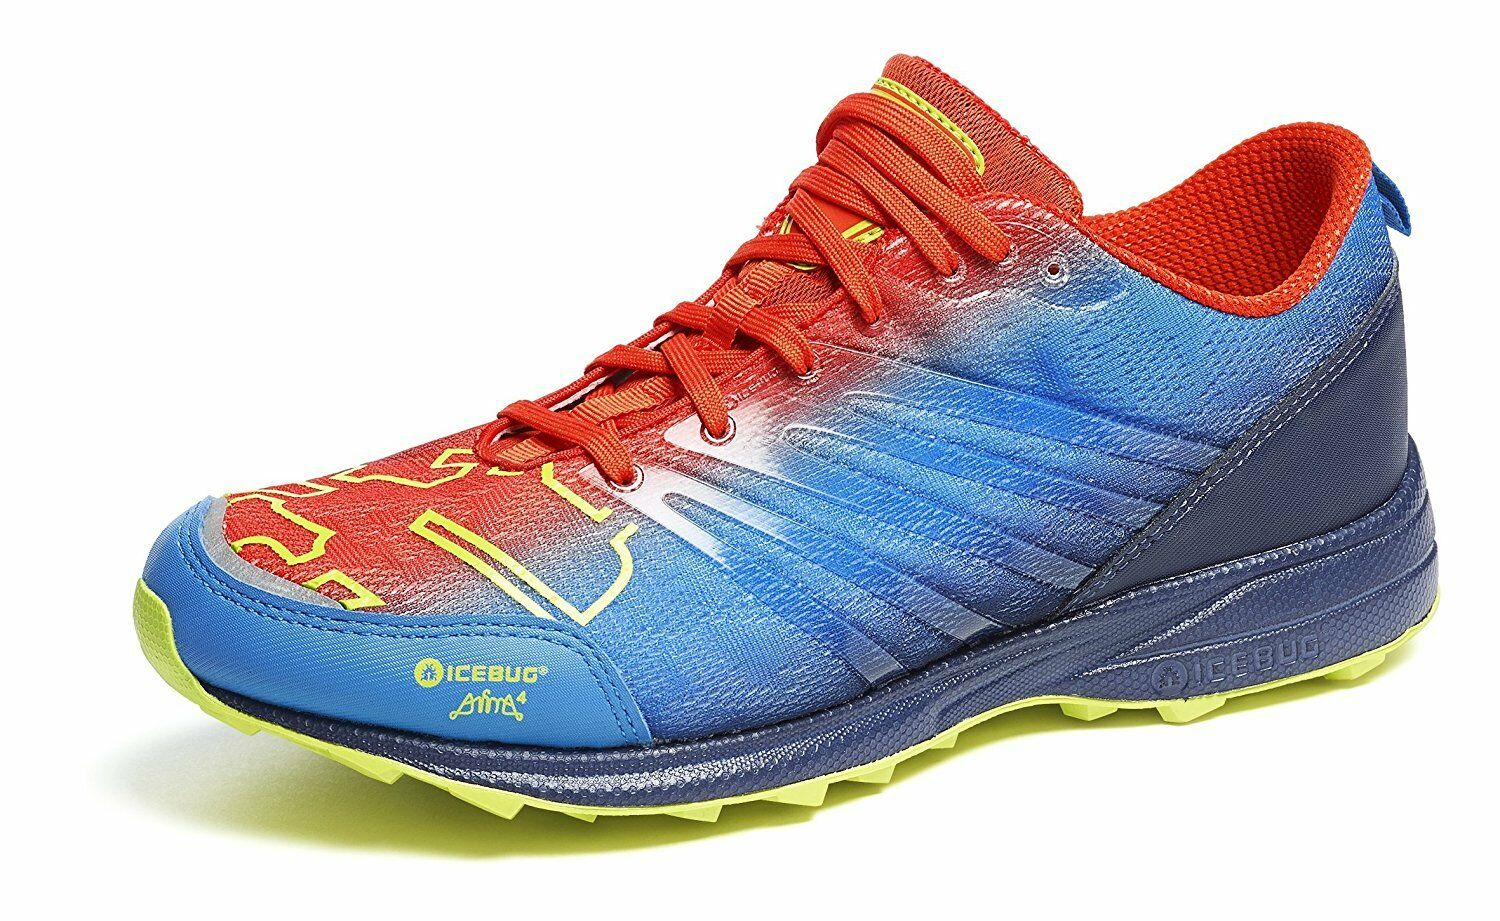 designer fashion f73ad 9a833 Icebug Men s Anima3 RB9X RB9X RB9X OCR Traction Running Shoe Grey Marigold  11. D